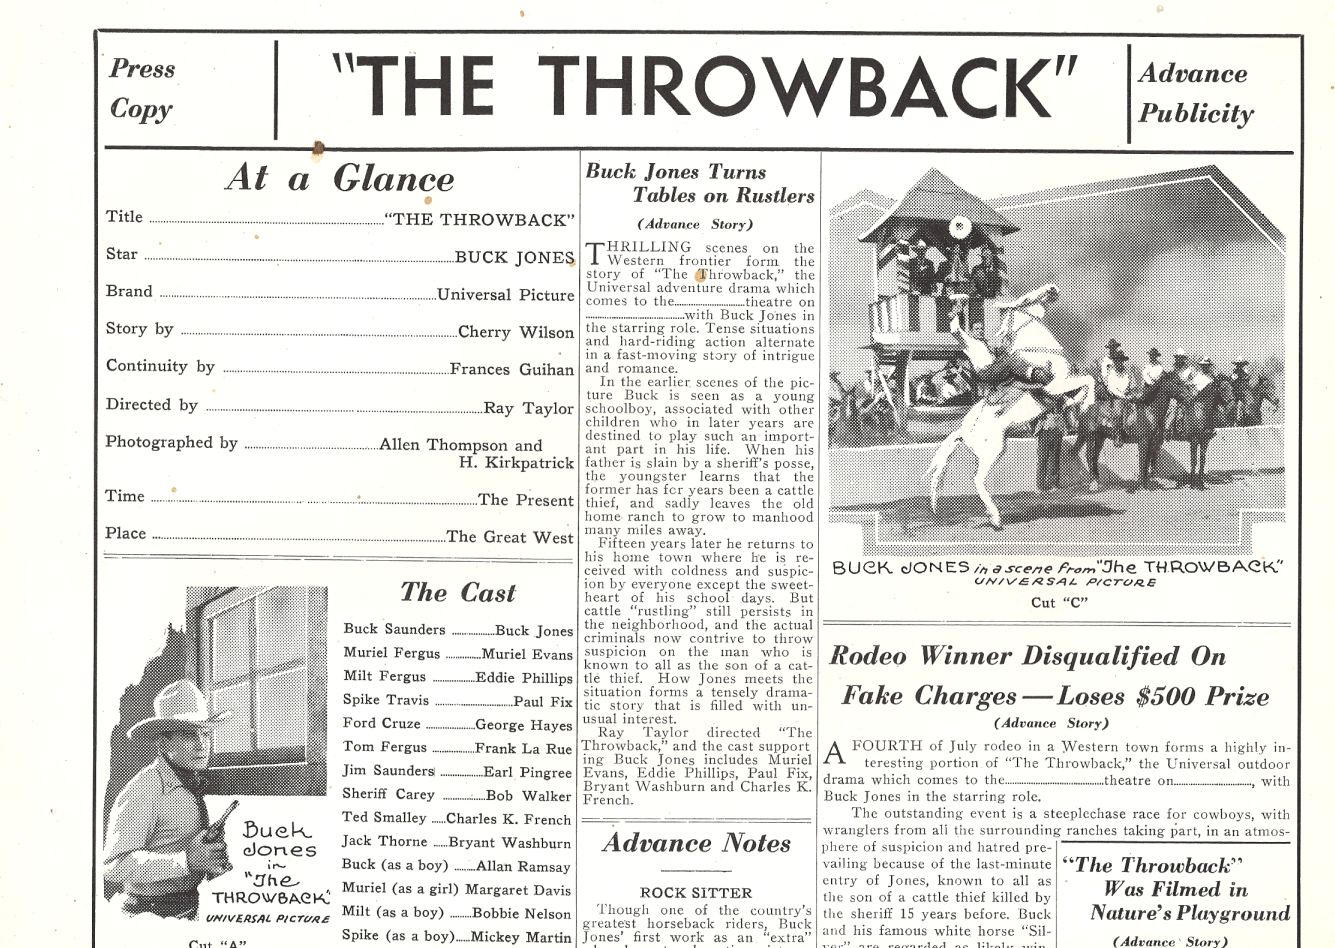 Buck Jones and Silver in The Throwback (1935)